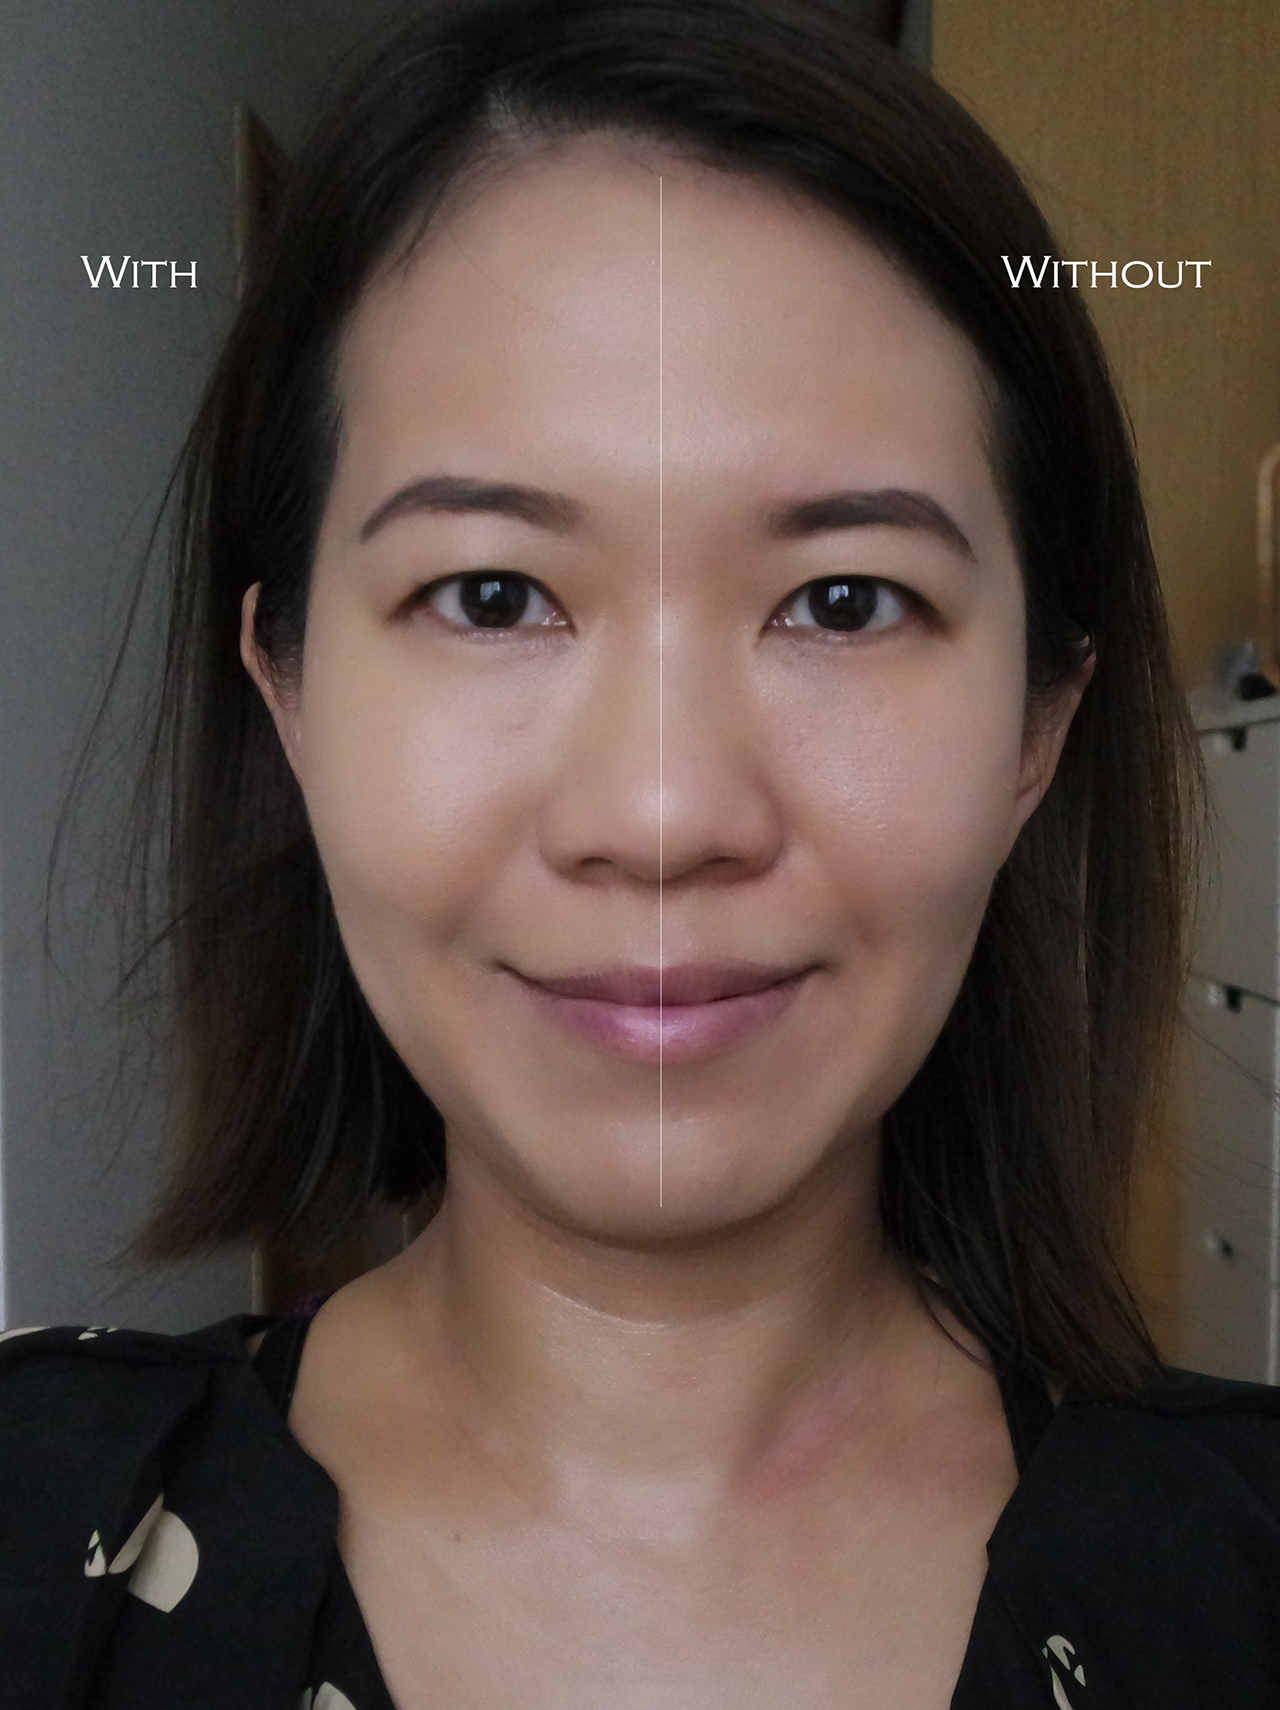 Shu Uemura Petal Skin Cushion Foundation before after comparison